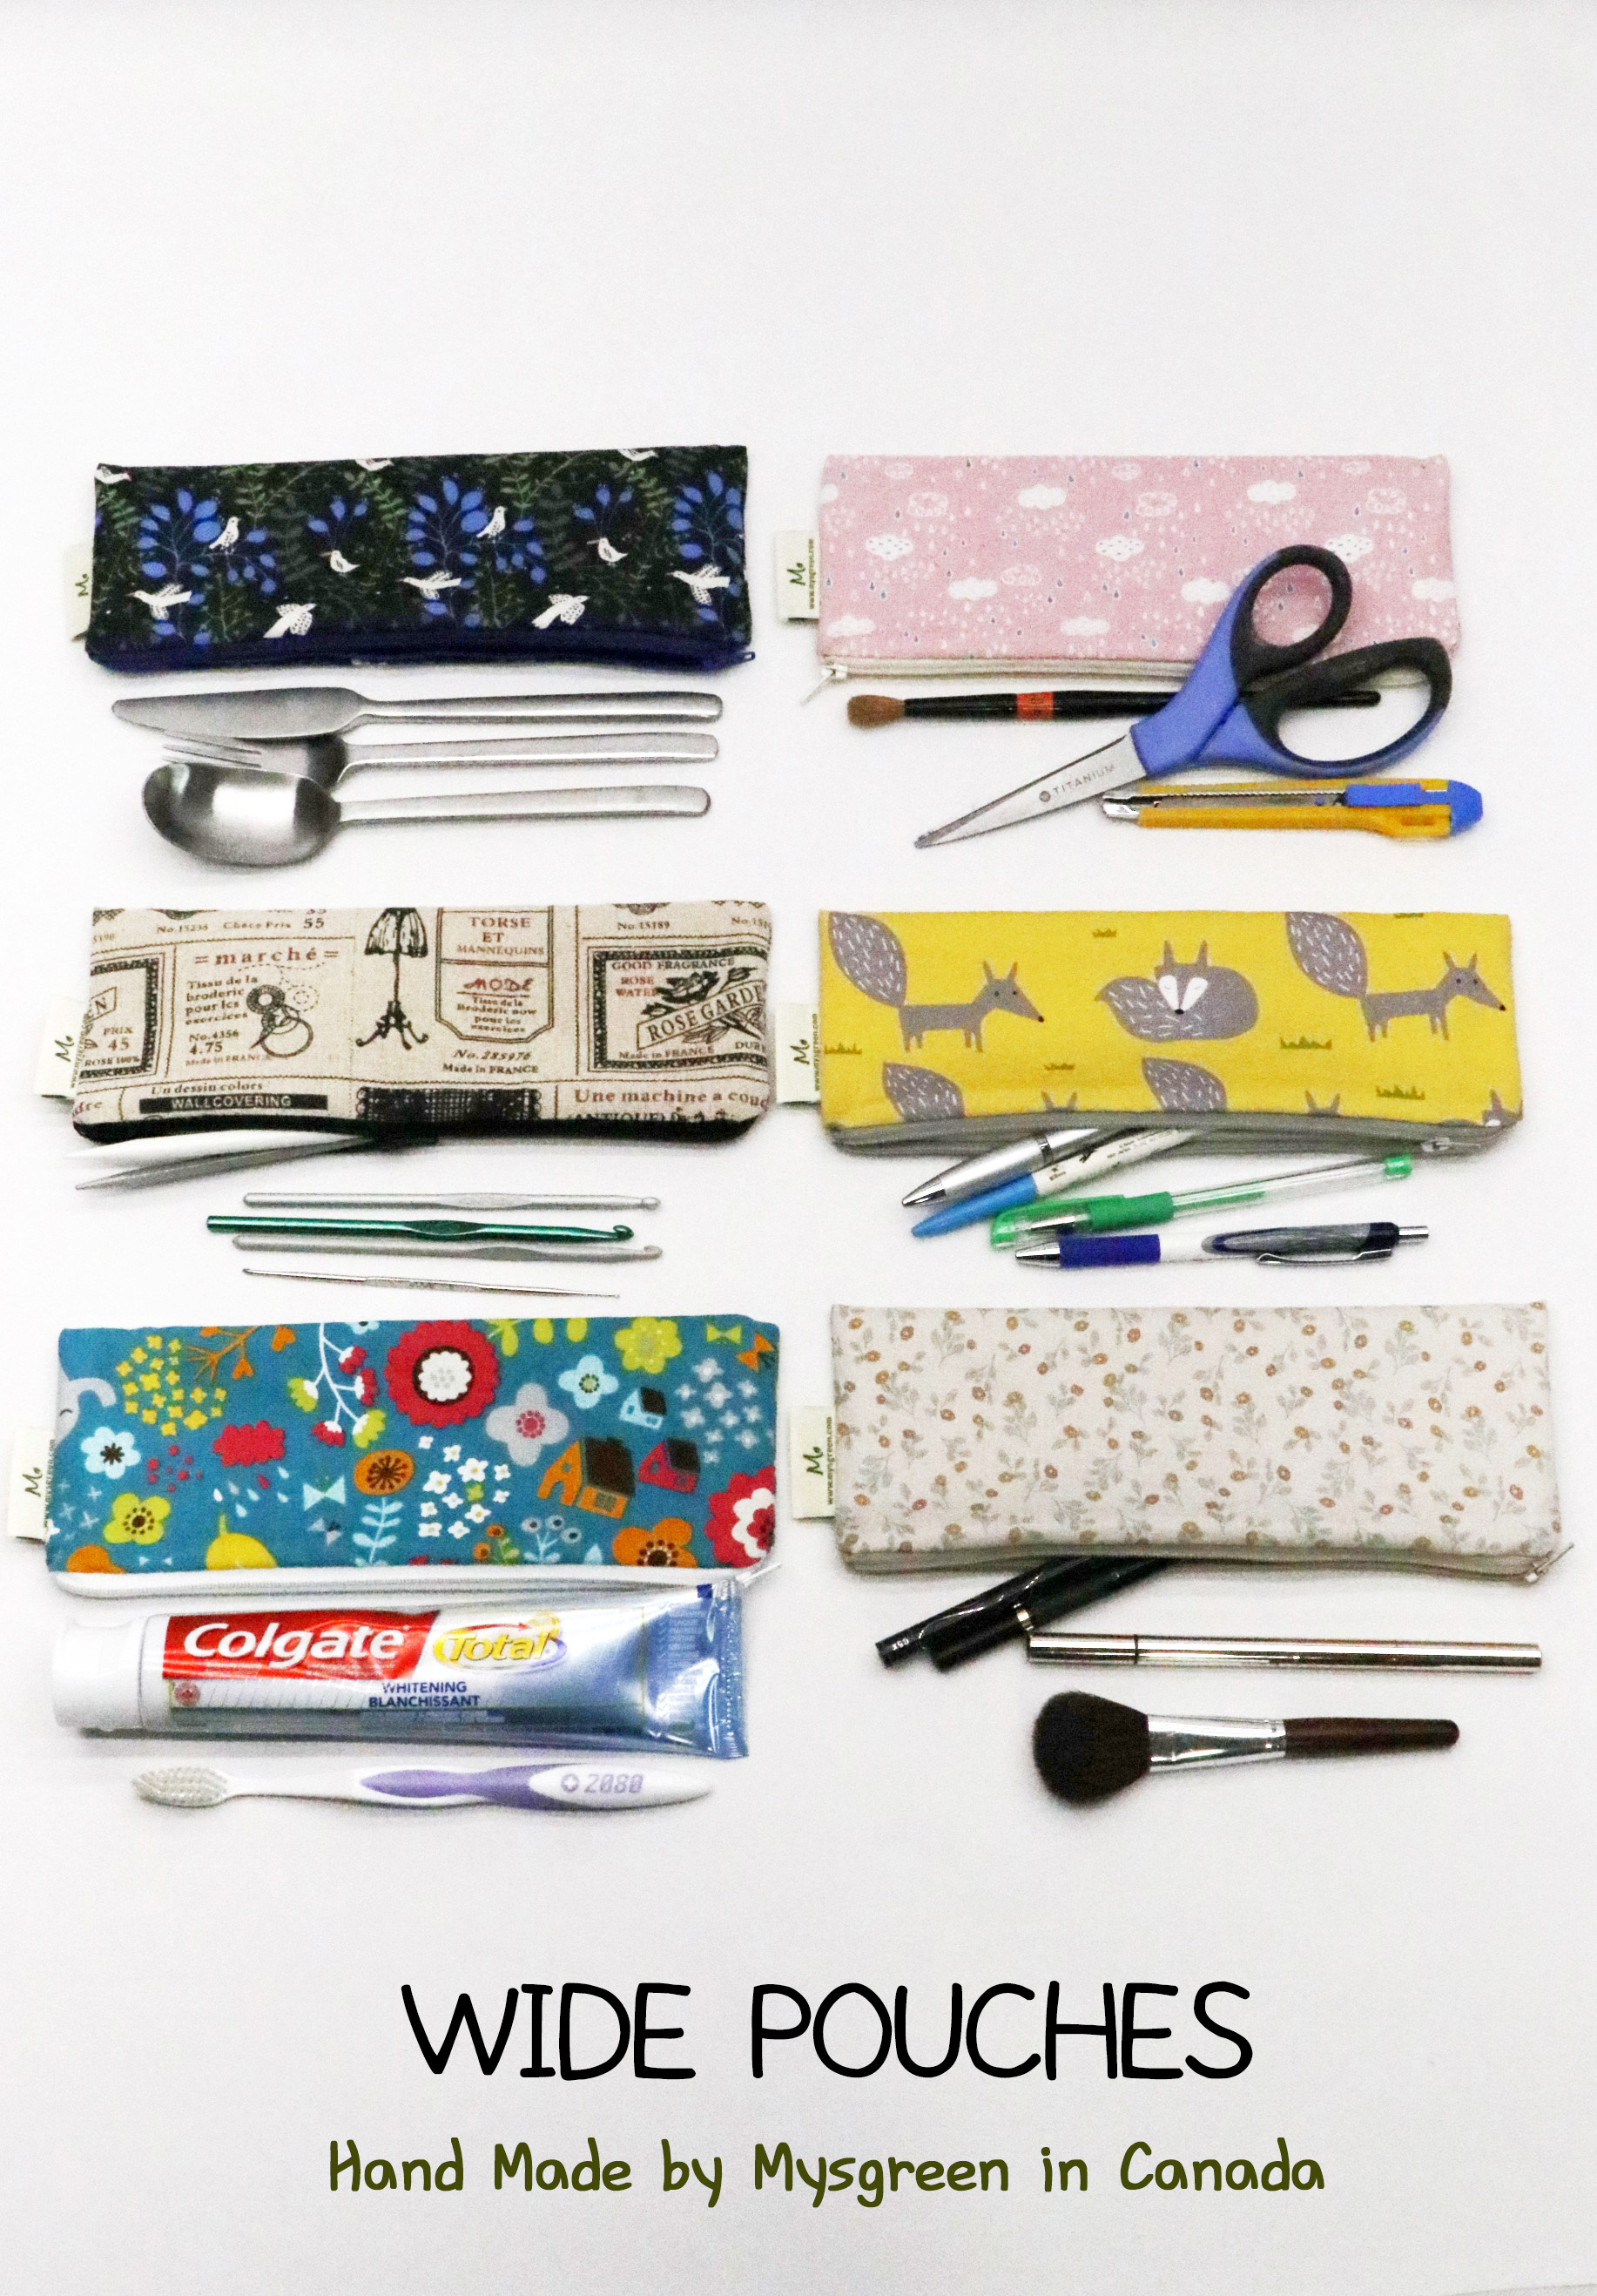 [image-wide pouch]